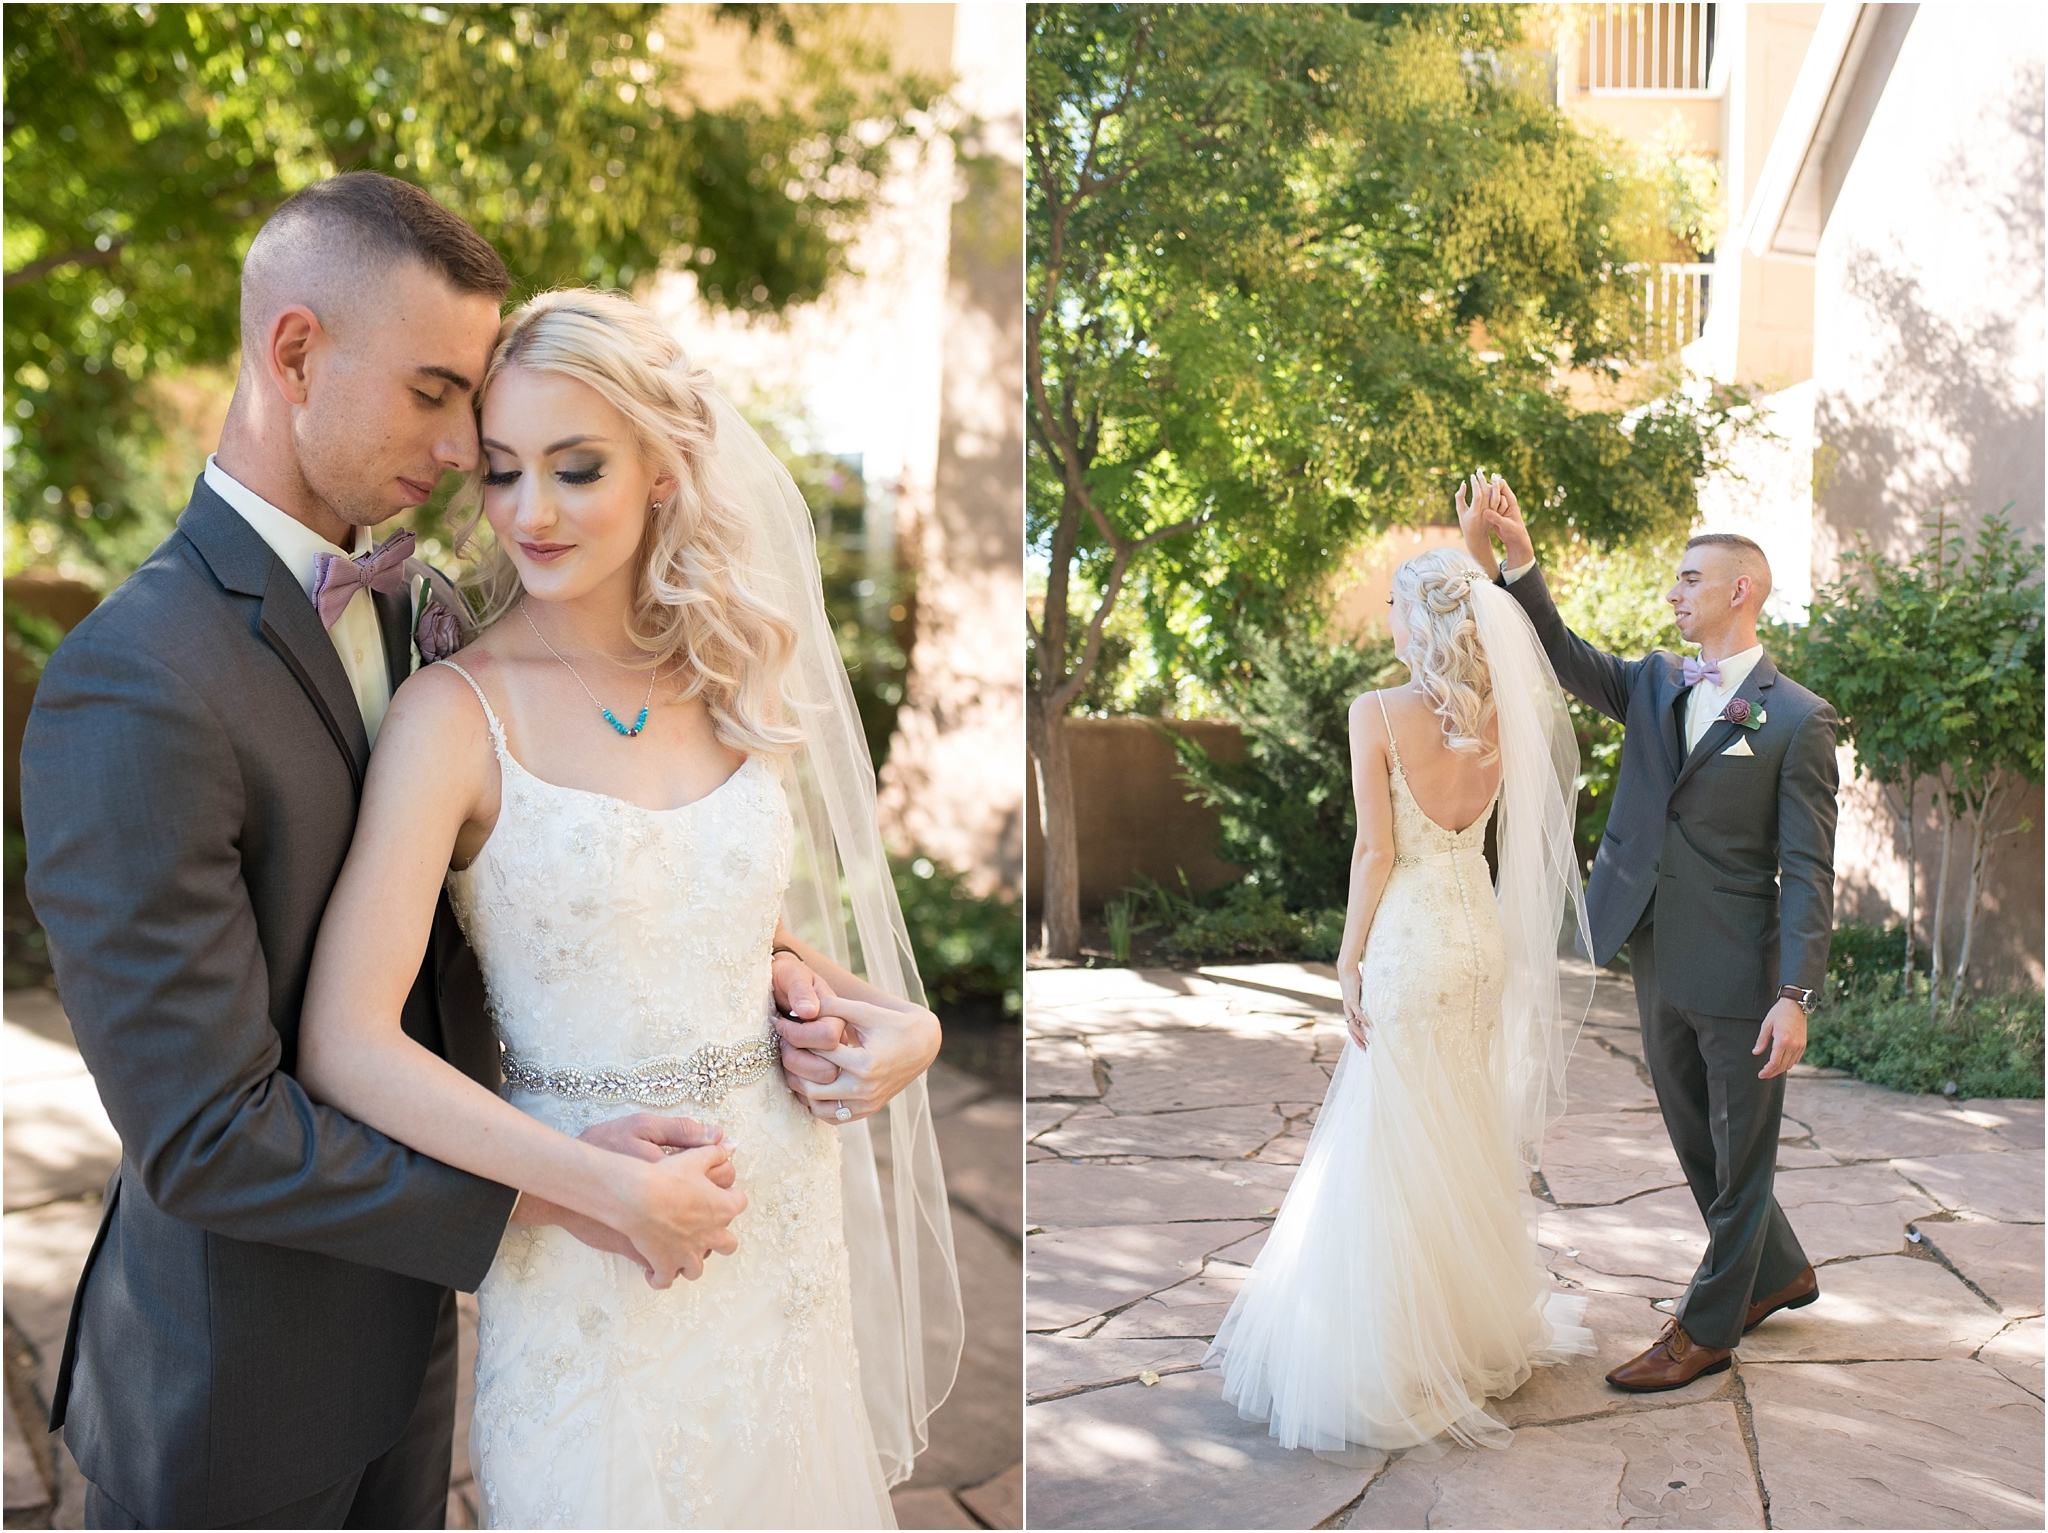 kayla kitts photography - new mexico wedding photographer - albuquerque botanic gardens - hotel albuquerque-casa de suenos_0207.jpg